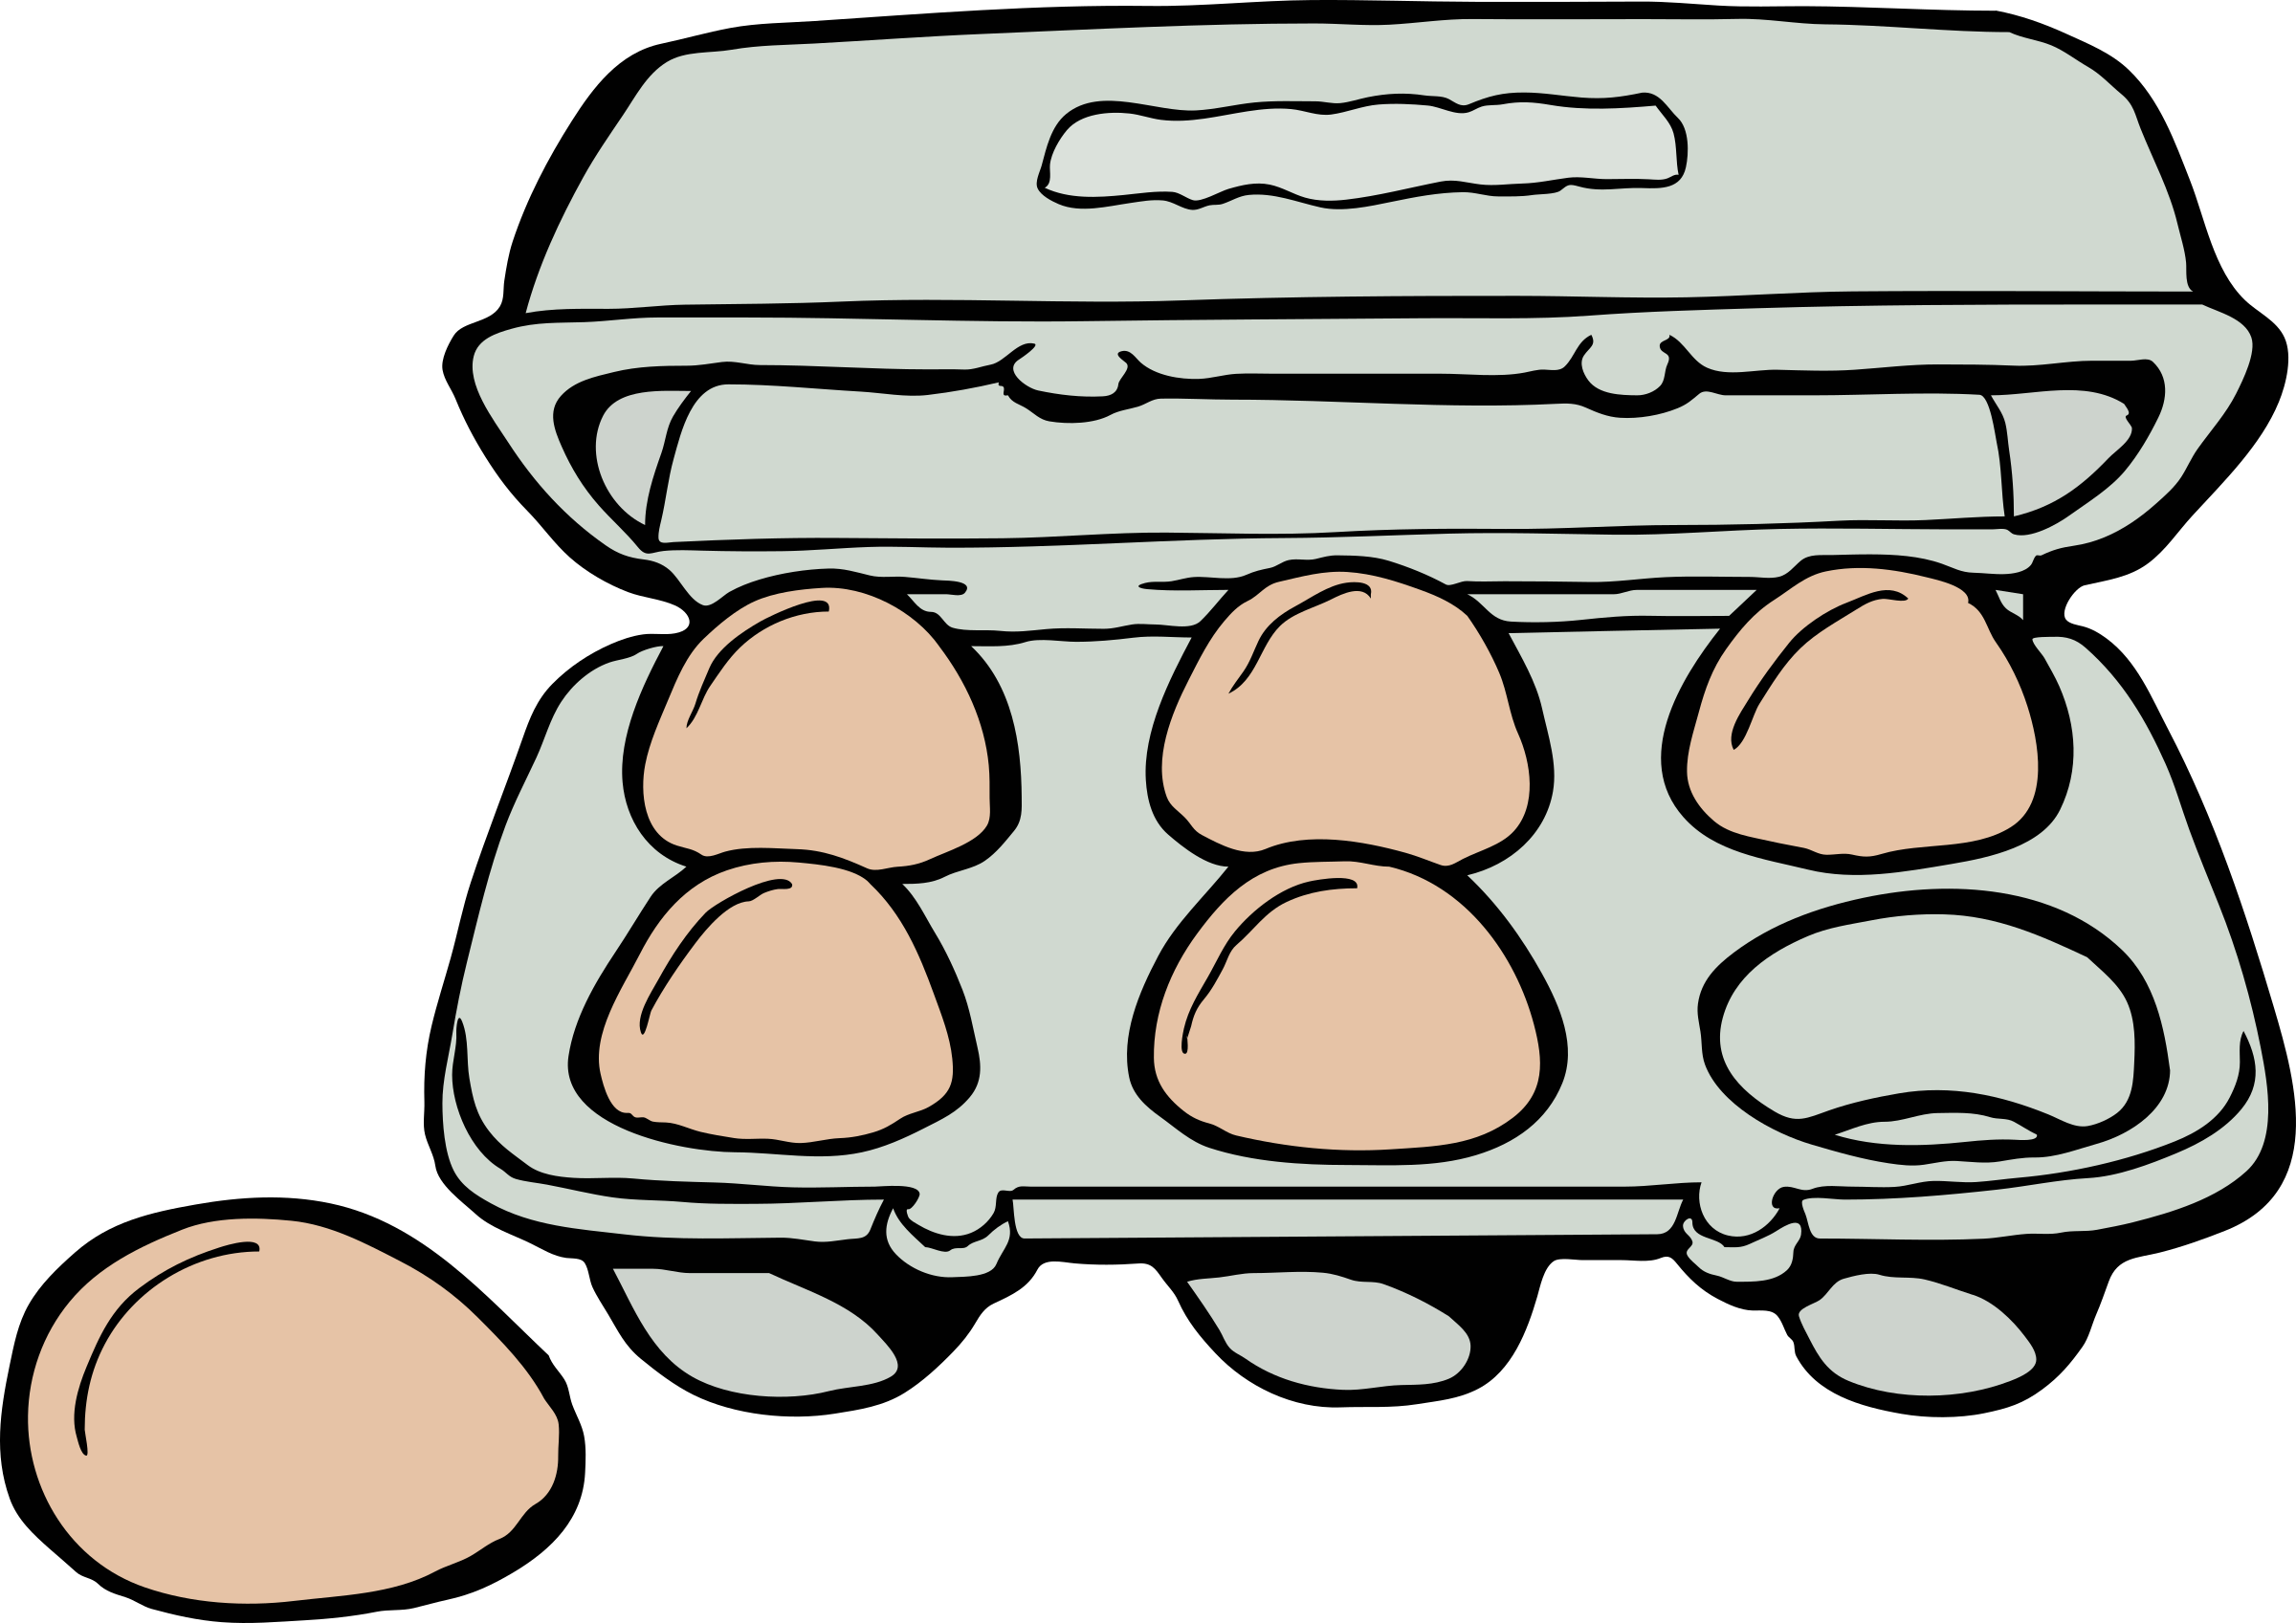 Carton of Brown Eggs by j4p4n